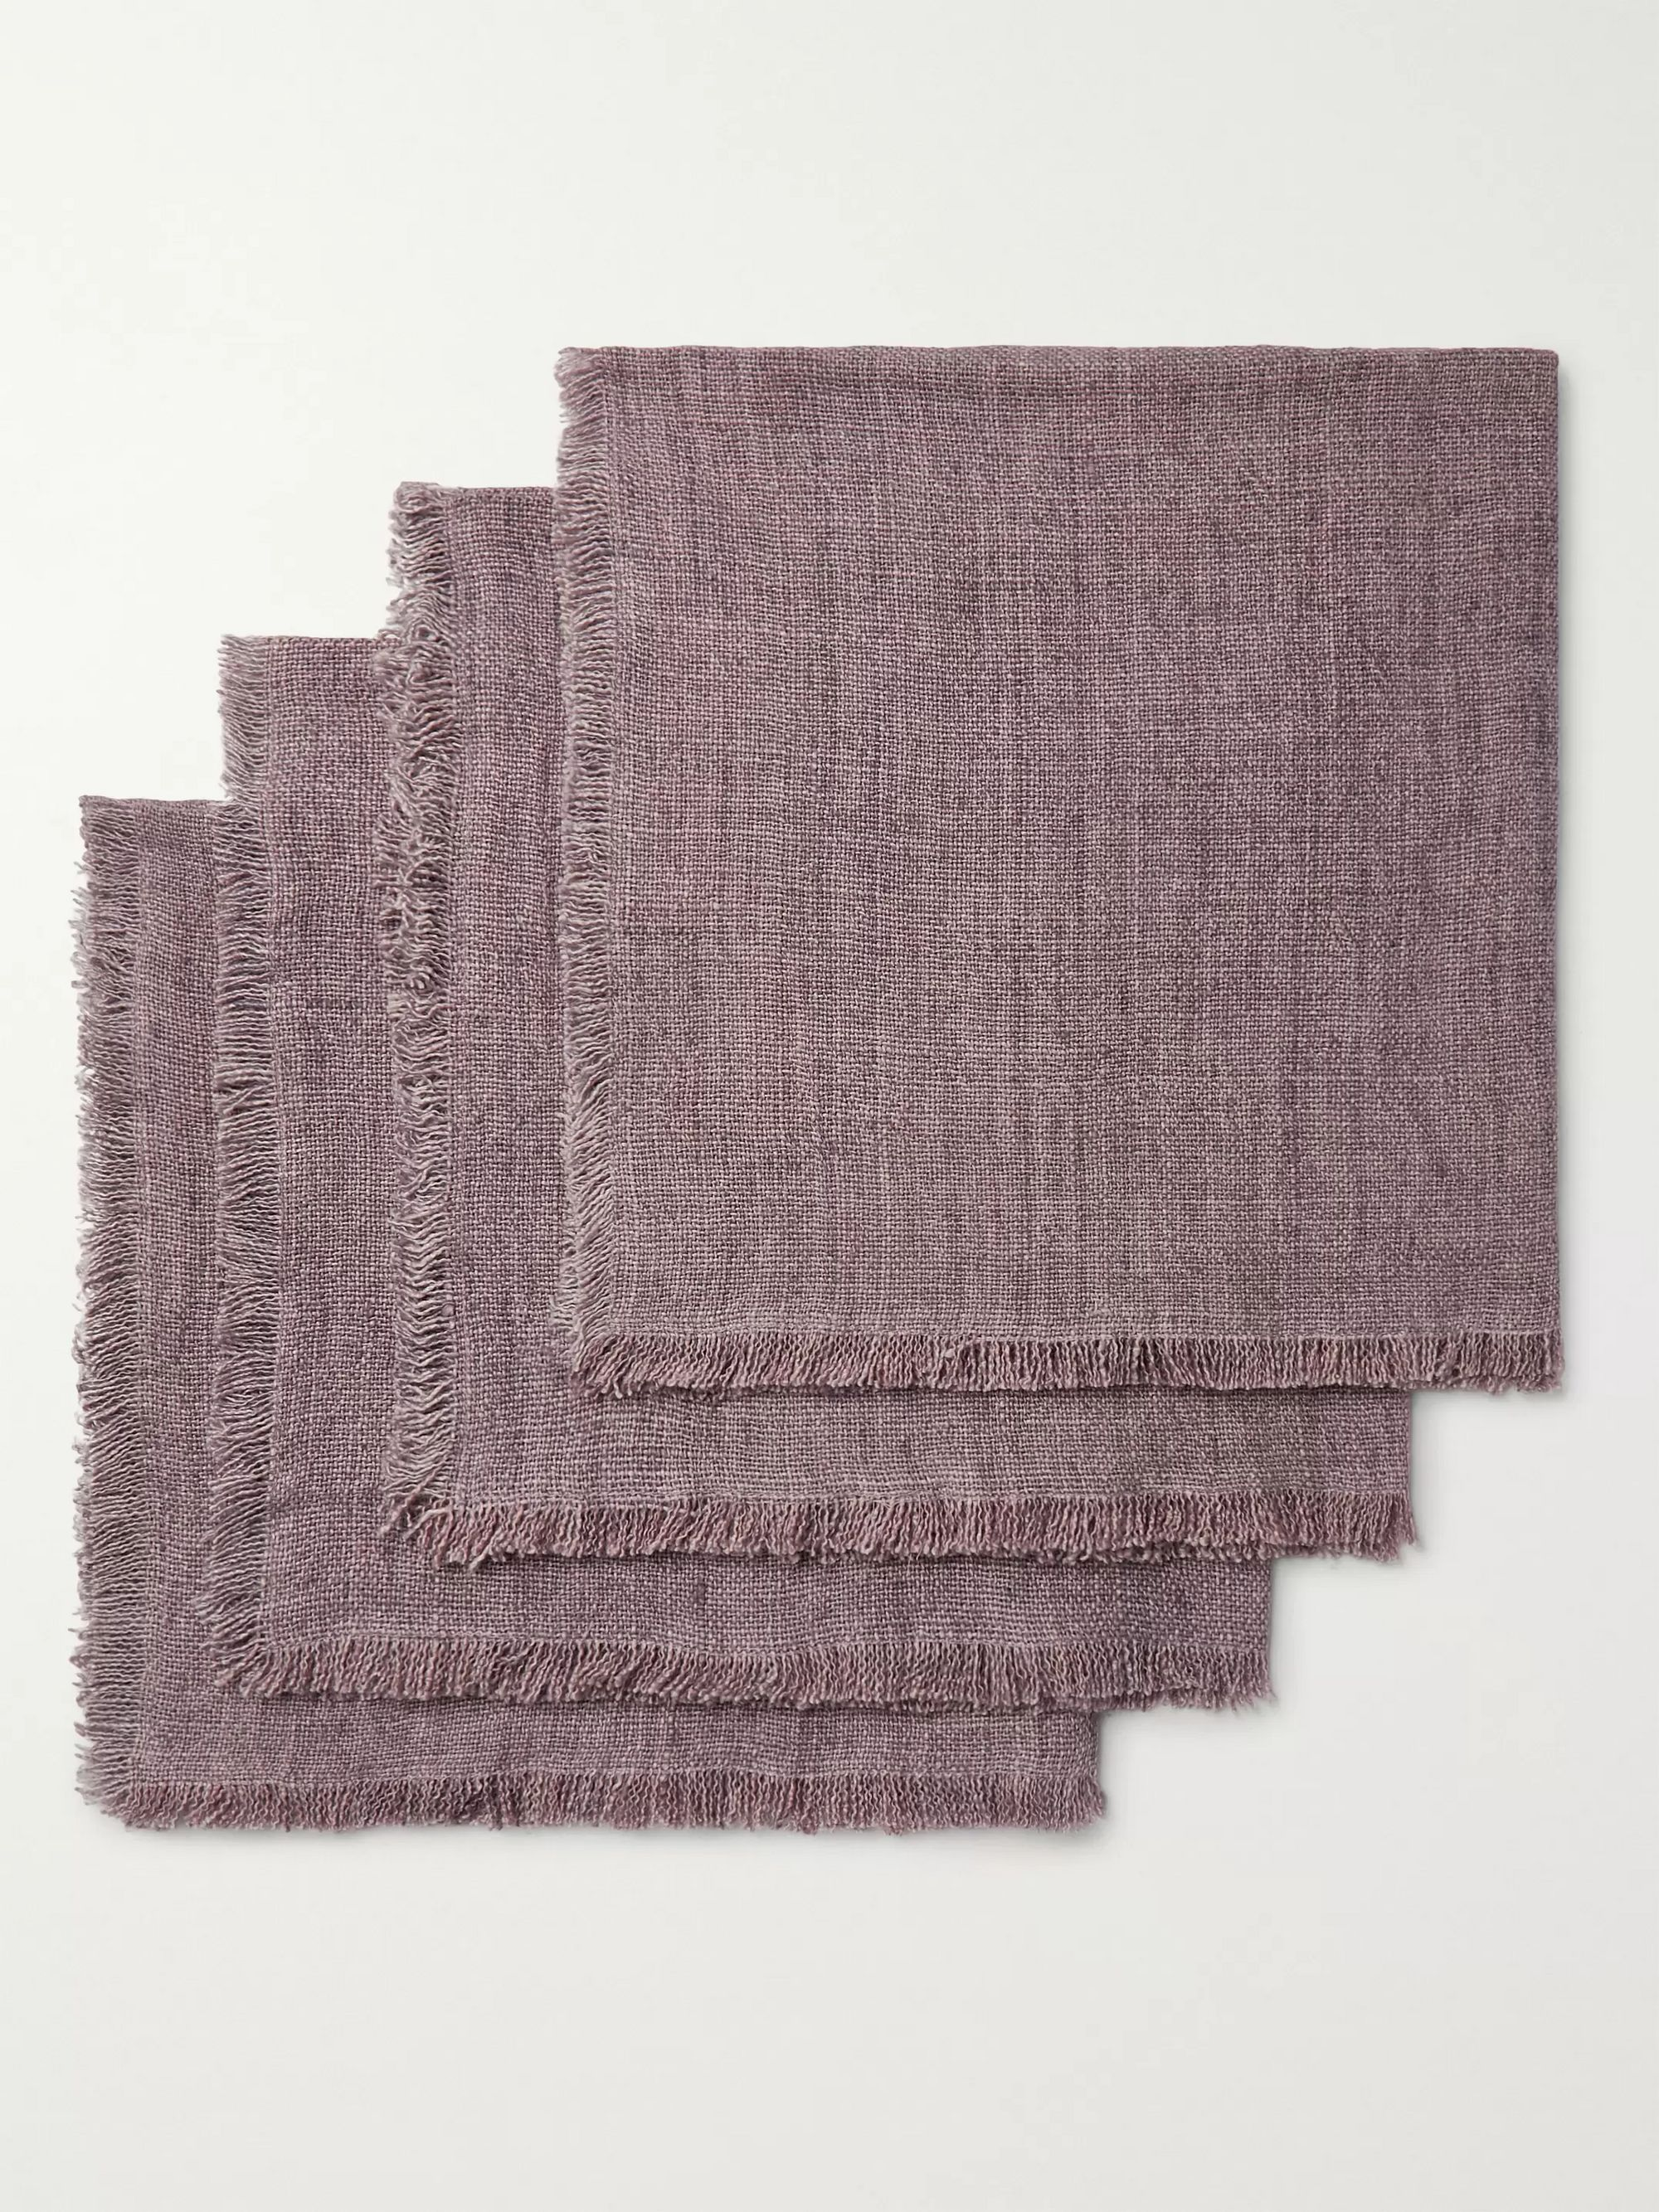 Roman & Williams Guild Four-Pack Linen Napkins